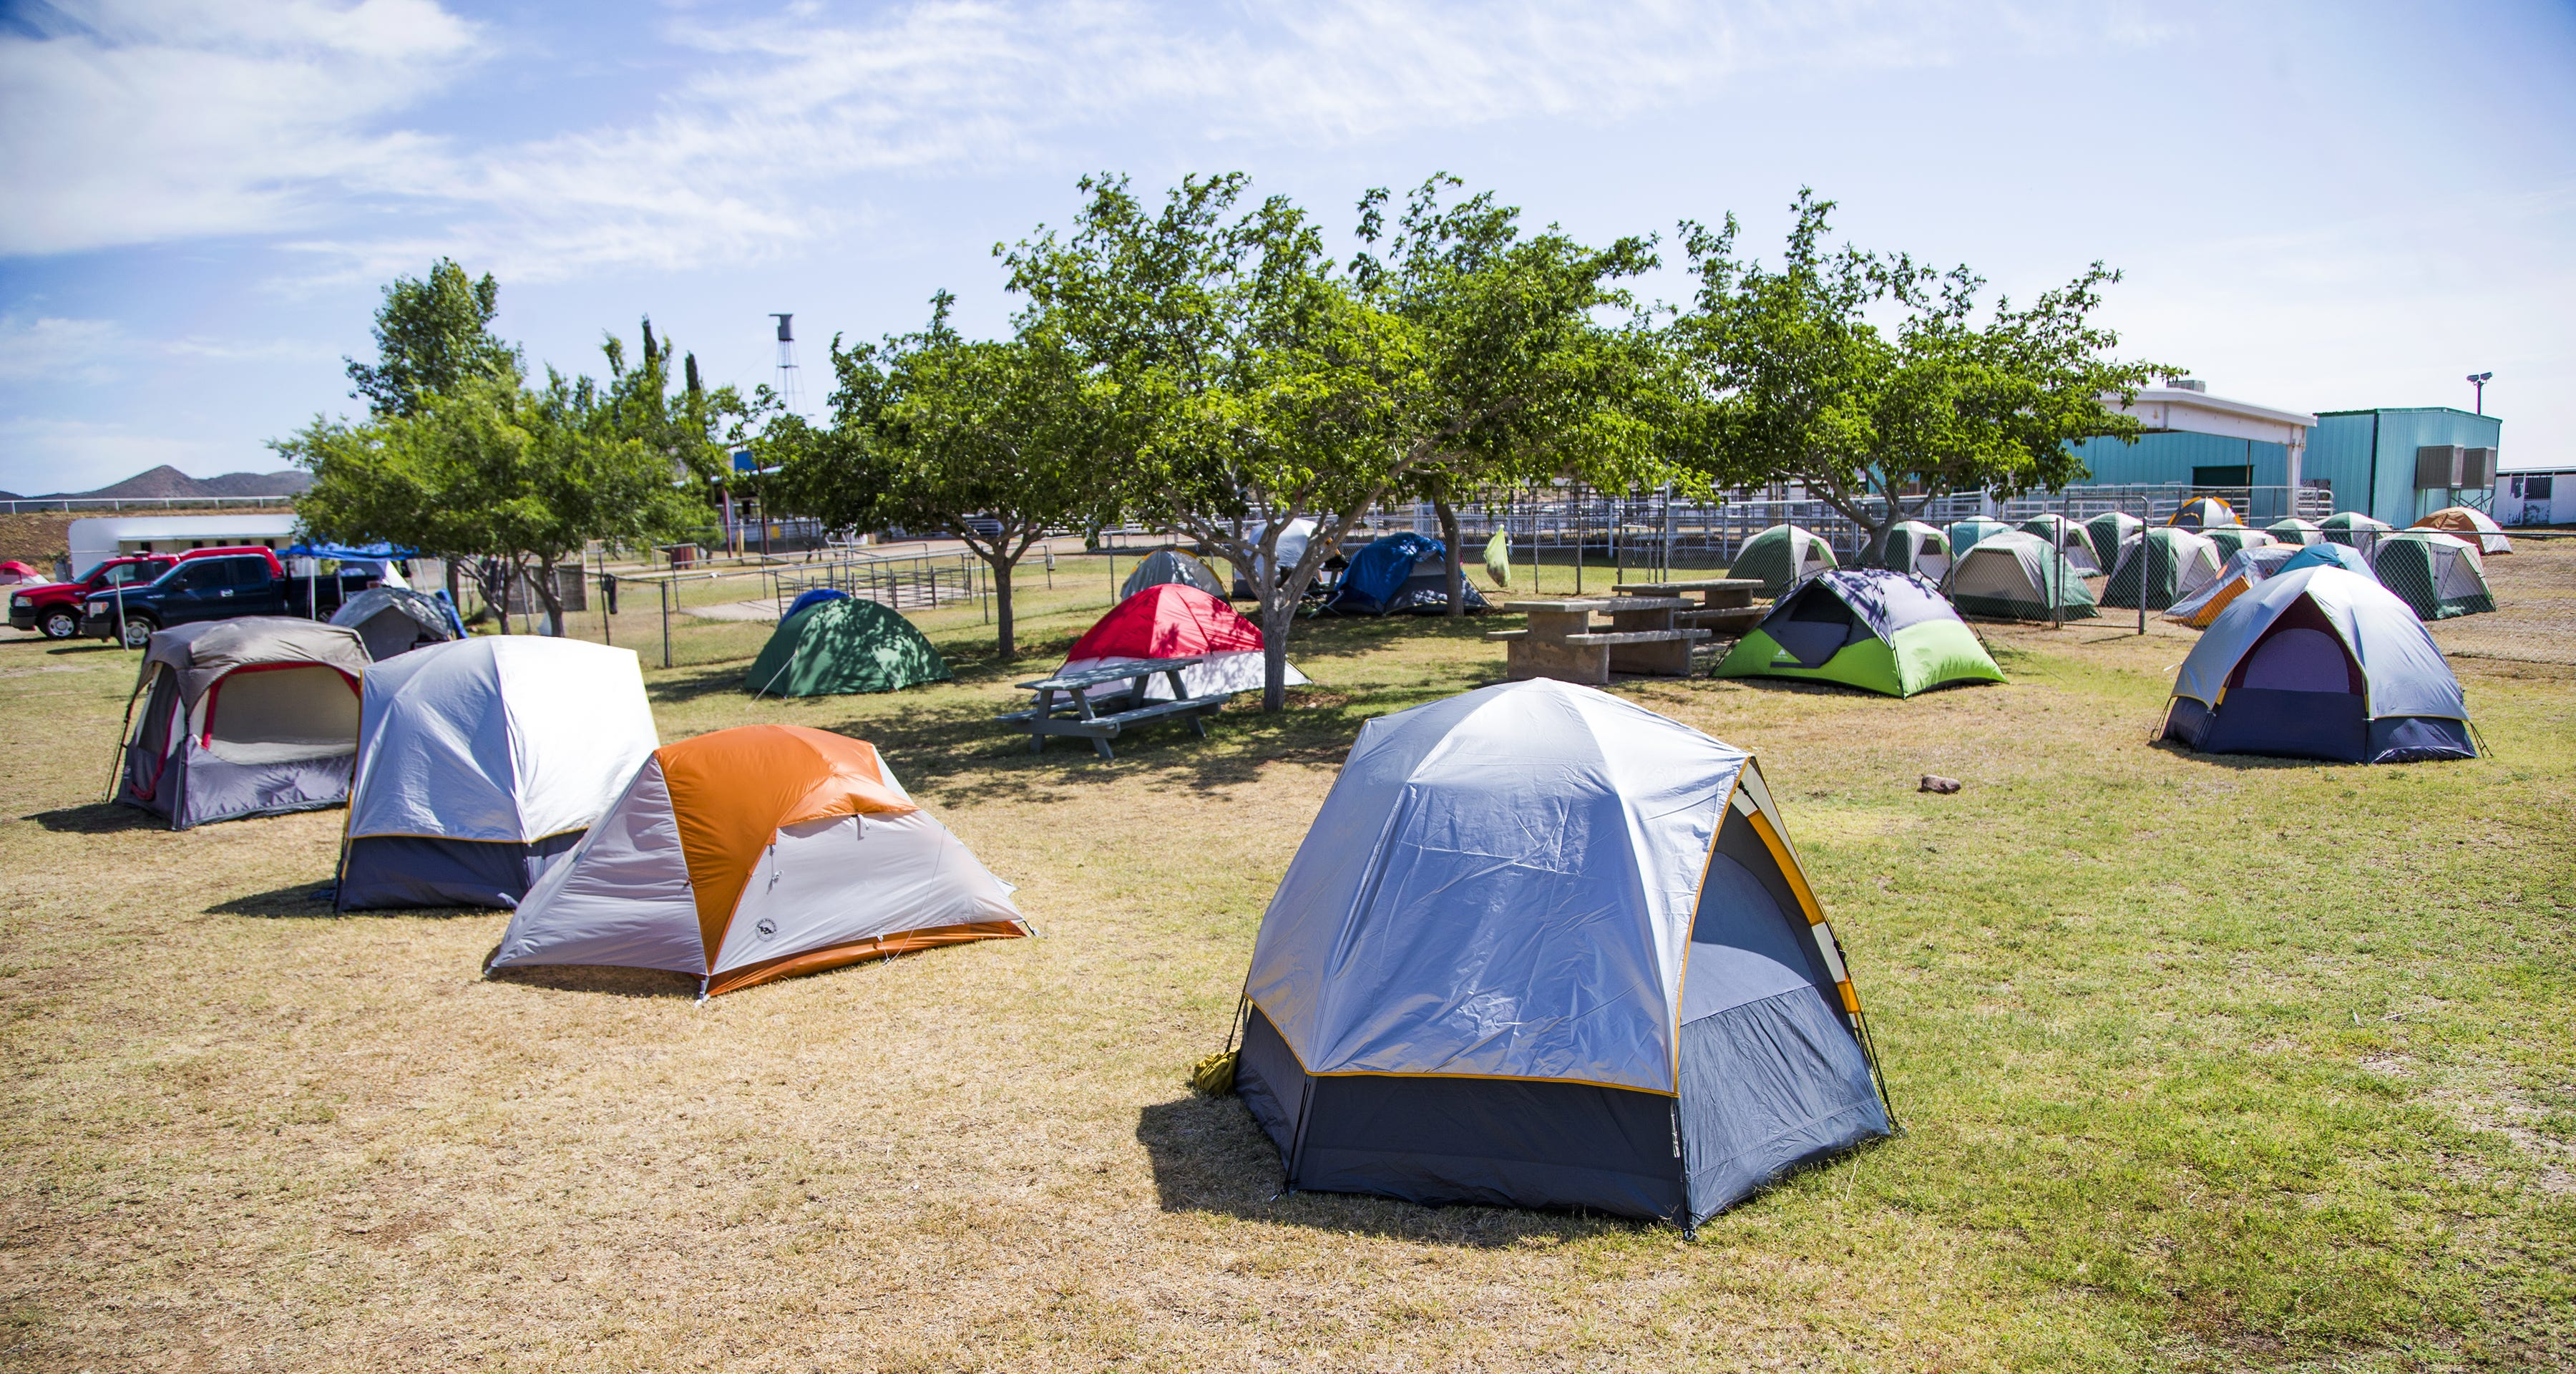 It takes a camp: Small cities emerge on the edge of wildfires